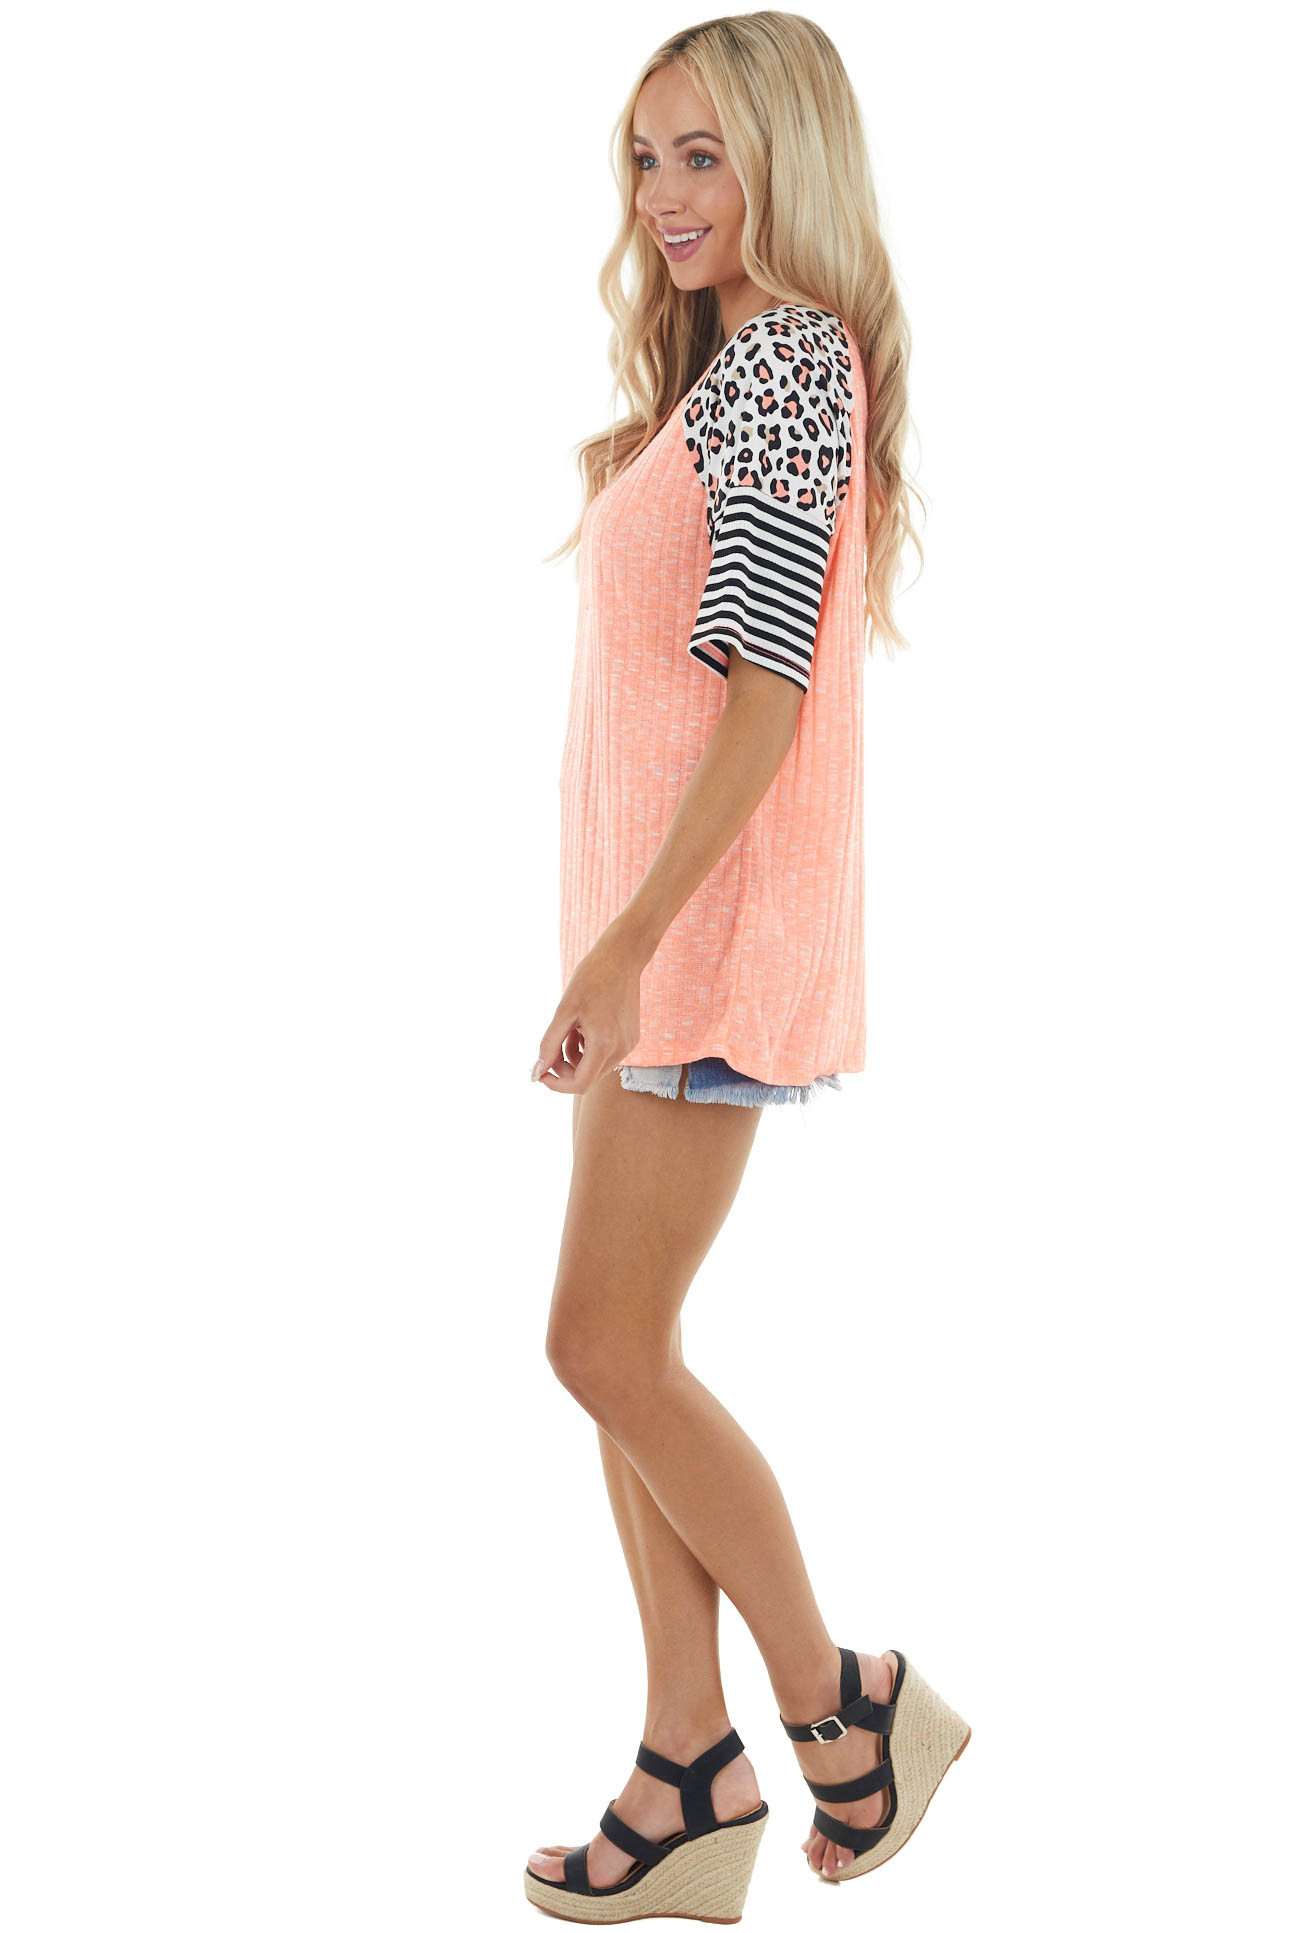 Heathered Neon Coral Knit Top with Multiprint Short Sleeves